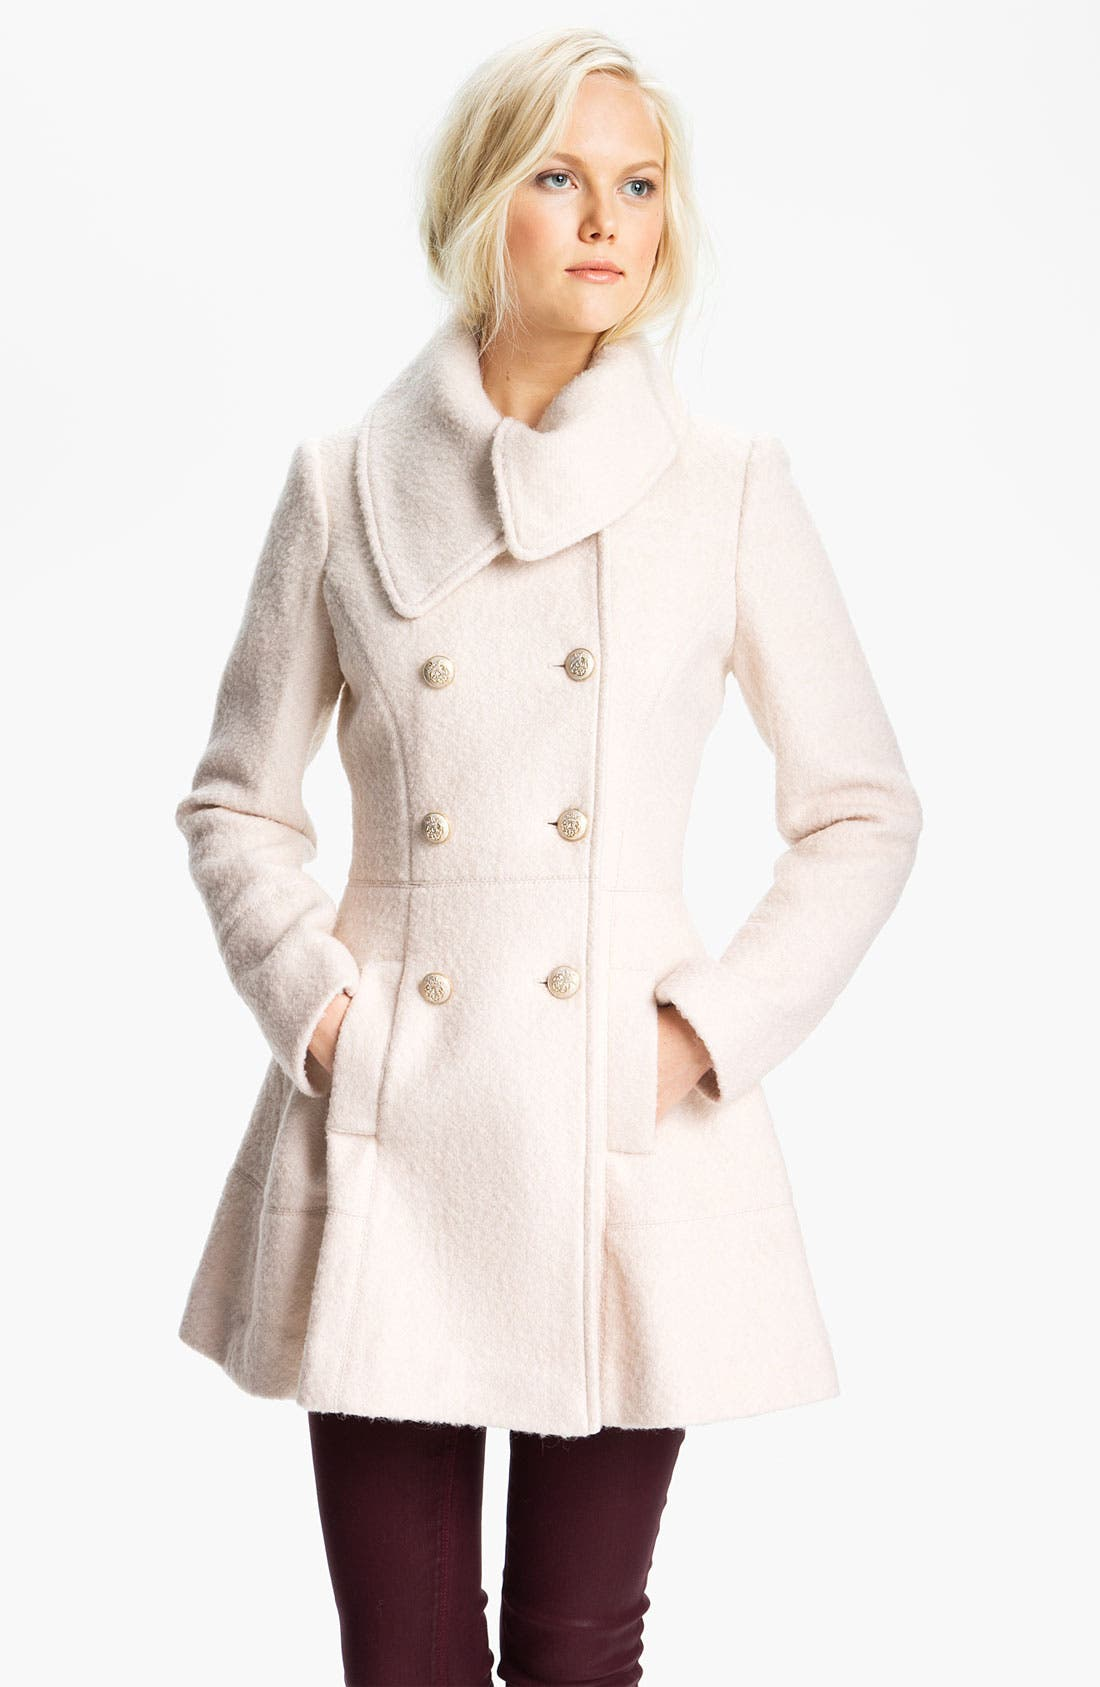 Alternate Image 1 Selected - GUESS Asymmetrical Collar Bouclé Coat (Online Exclusive)